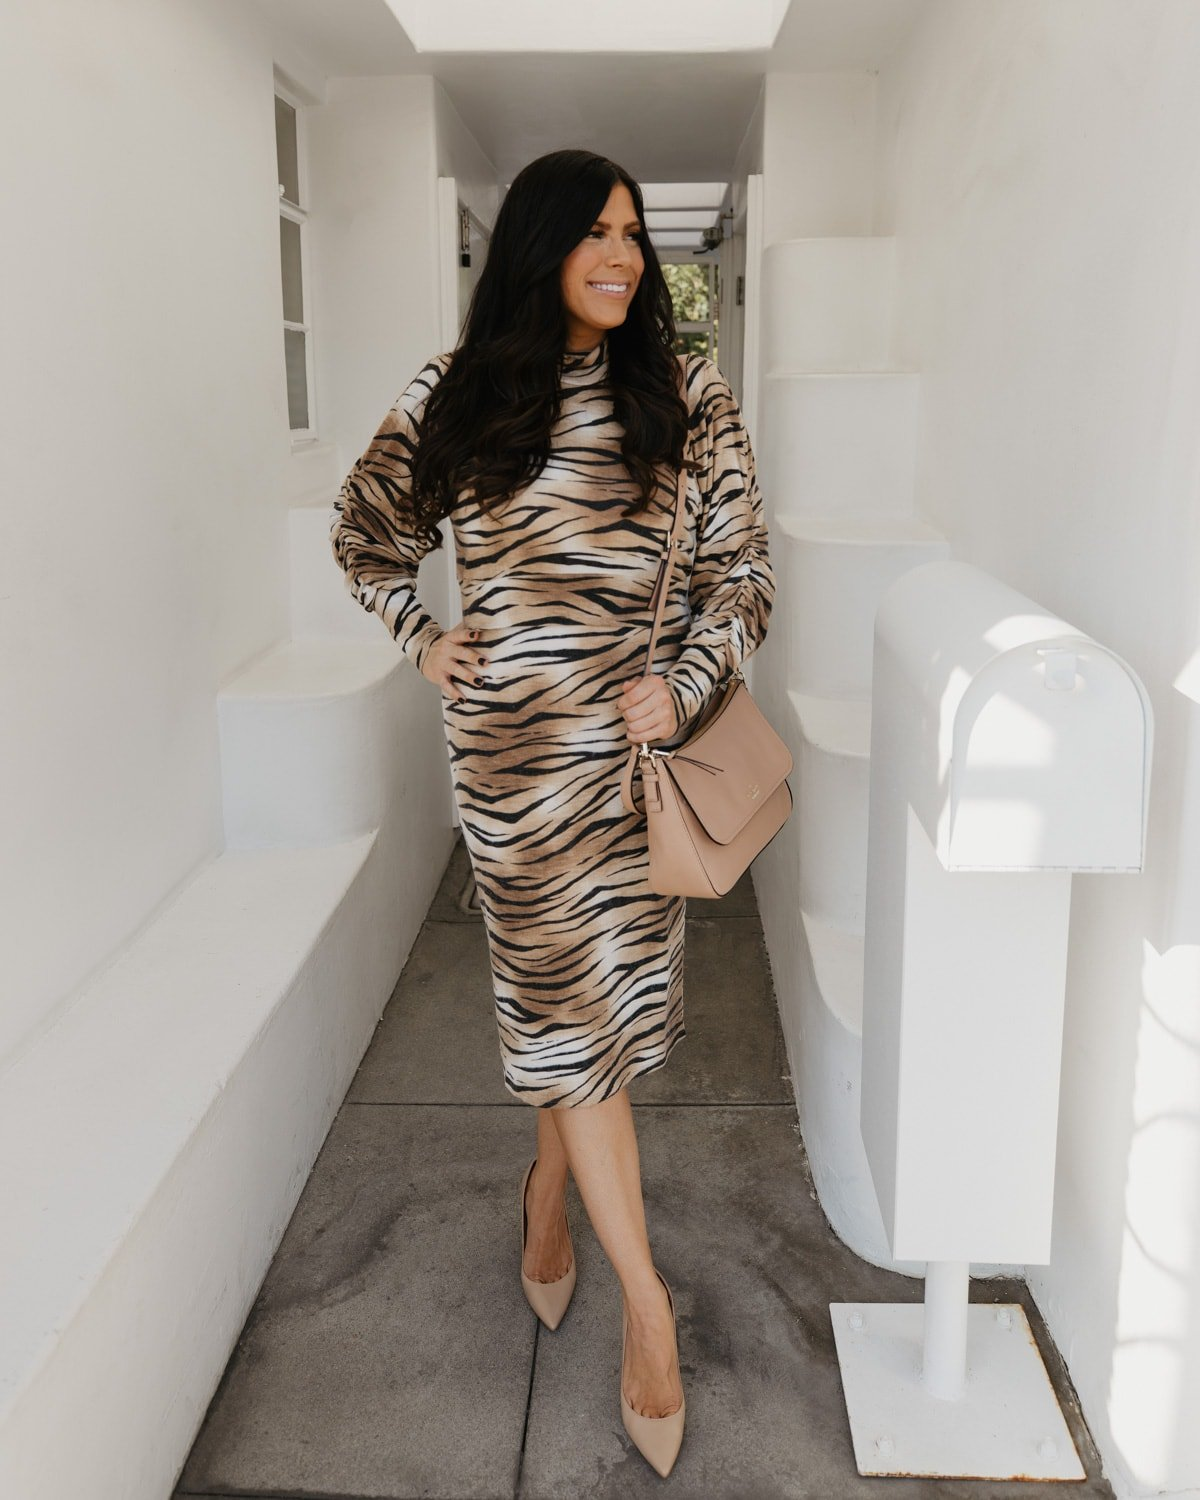 tiger striped outfit from nordstrom